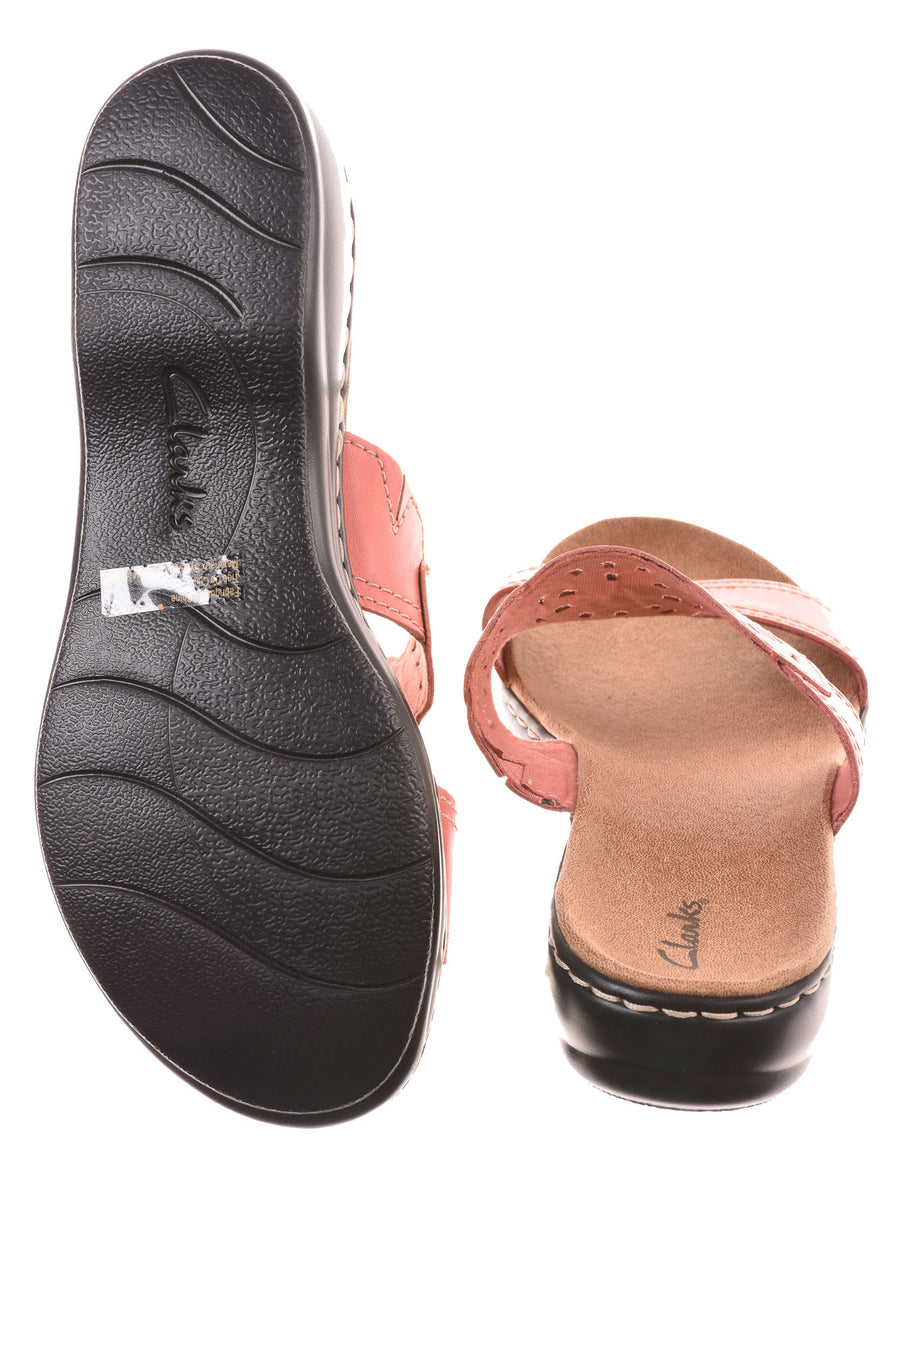 USED Clarks Women's  Wide Shoes  10W Pink